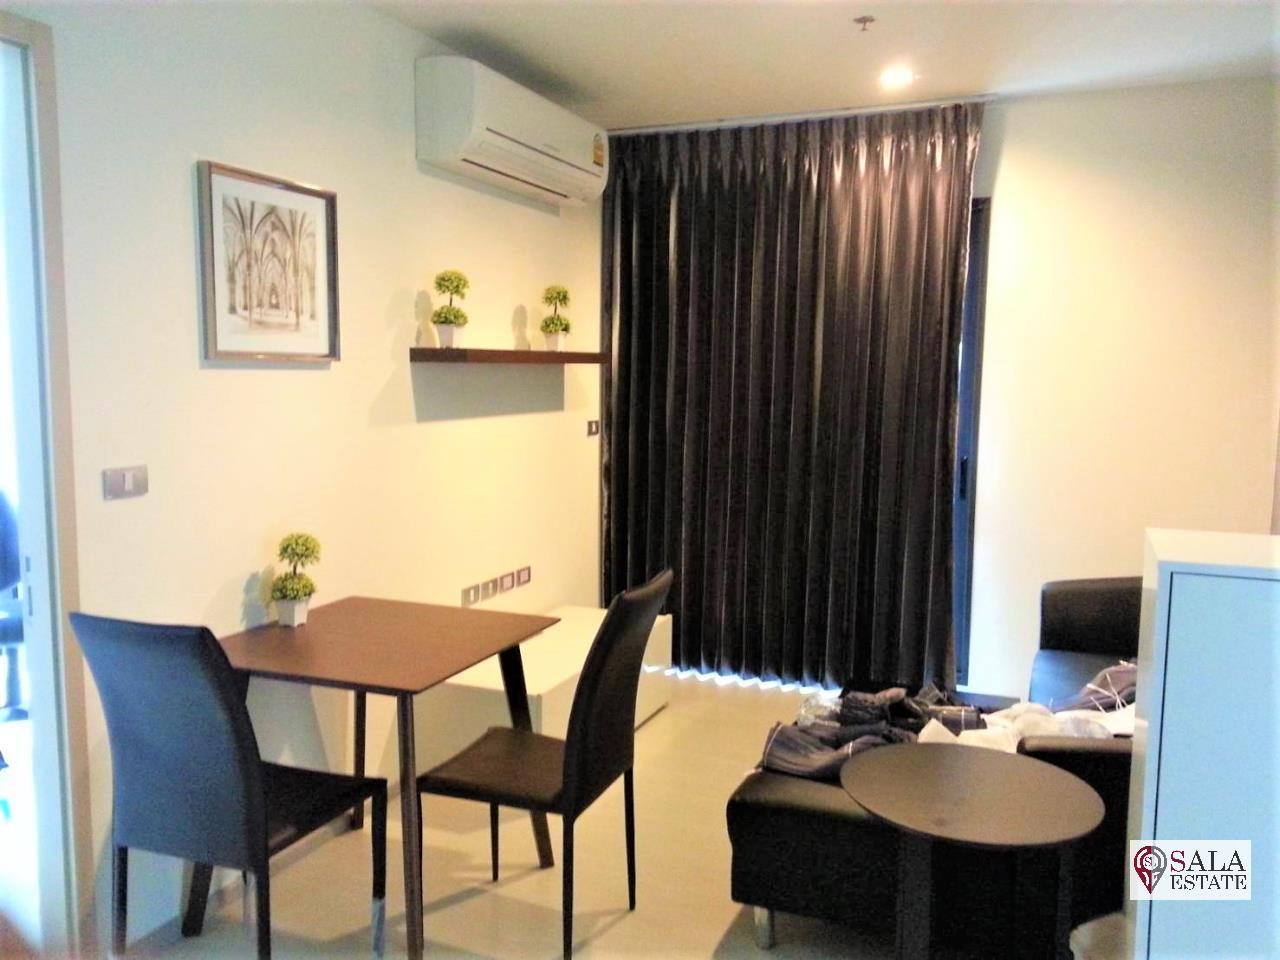 SALA ESTATE Agency's (SALE WITH TENANT)RHYTHM SUKHUMVIT 36-38 – BTS THONG LOR, 55.6 SQM 2BEDROOMS 2BATHROOMS, FULLY FURNISHED 3